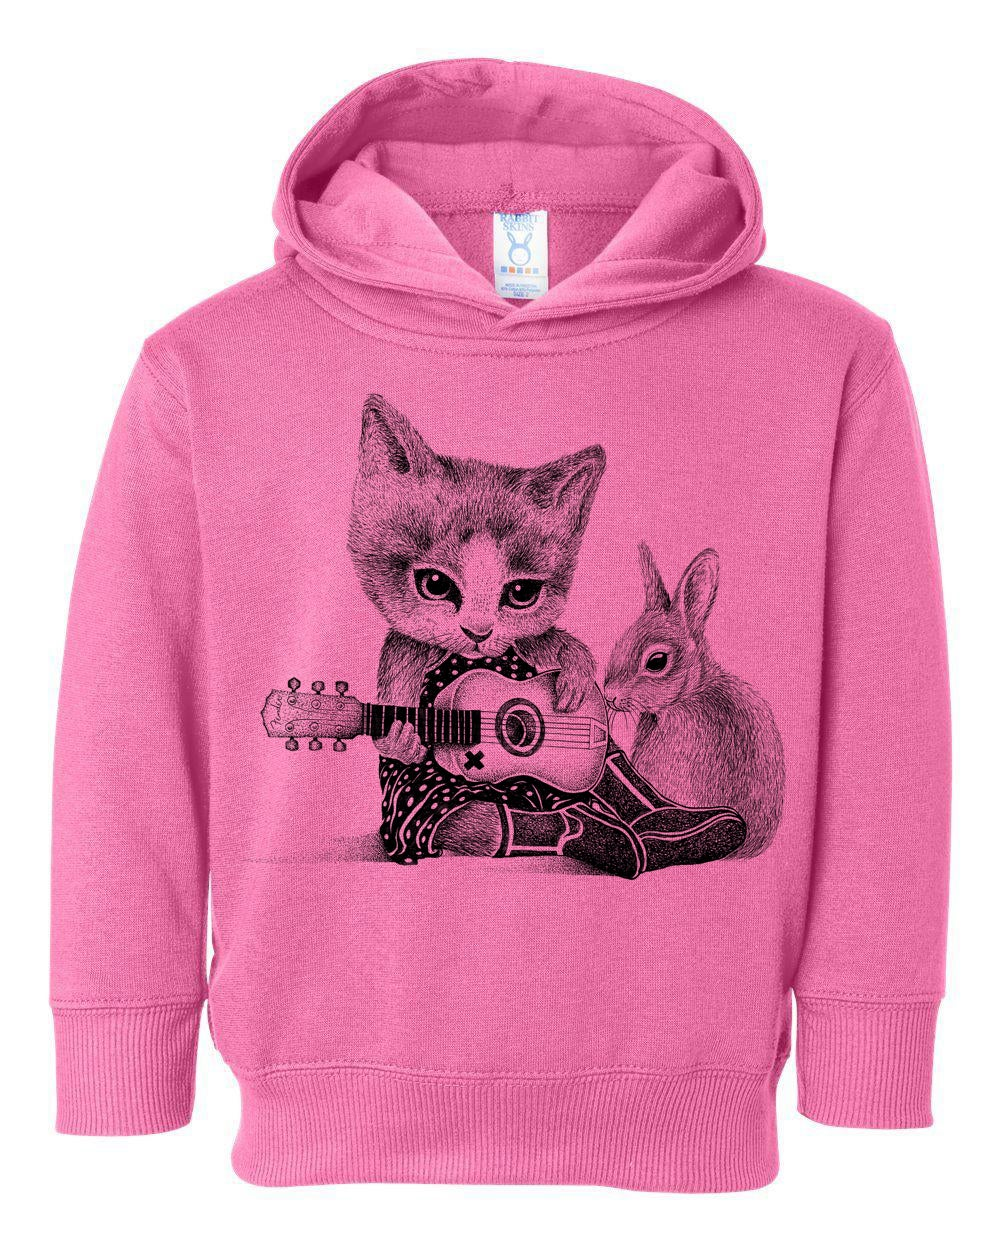 Image of Johnny Cat Toddler Hoodie